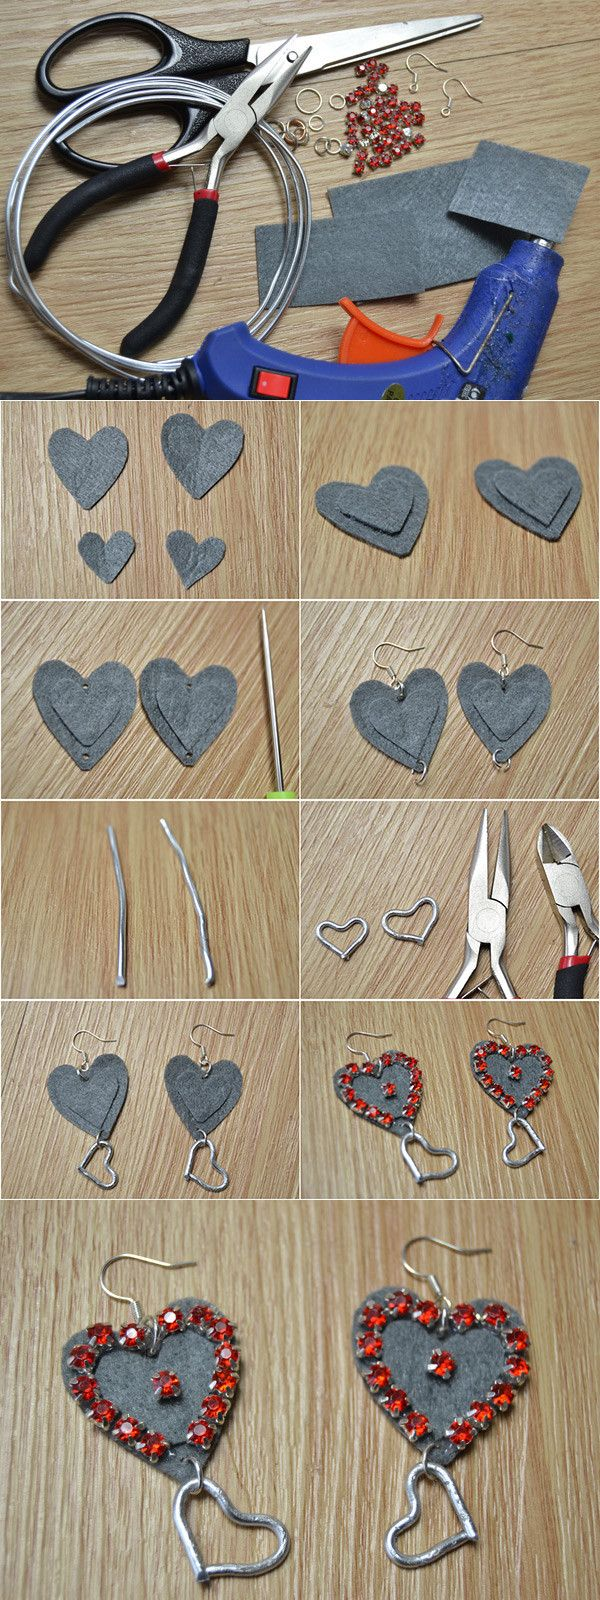 Make Your Own Cutest Felt Heart Dangling Earrings with Beads from LC.Pandahall.com